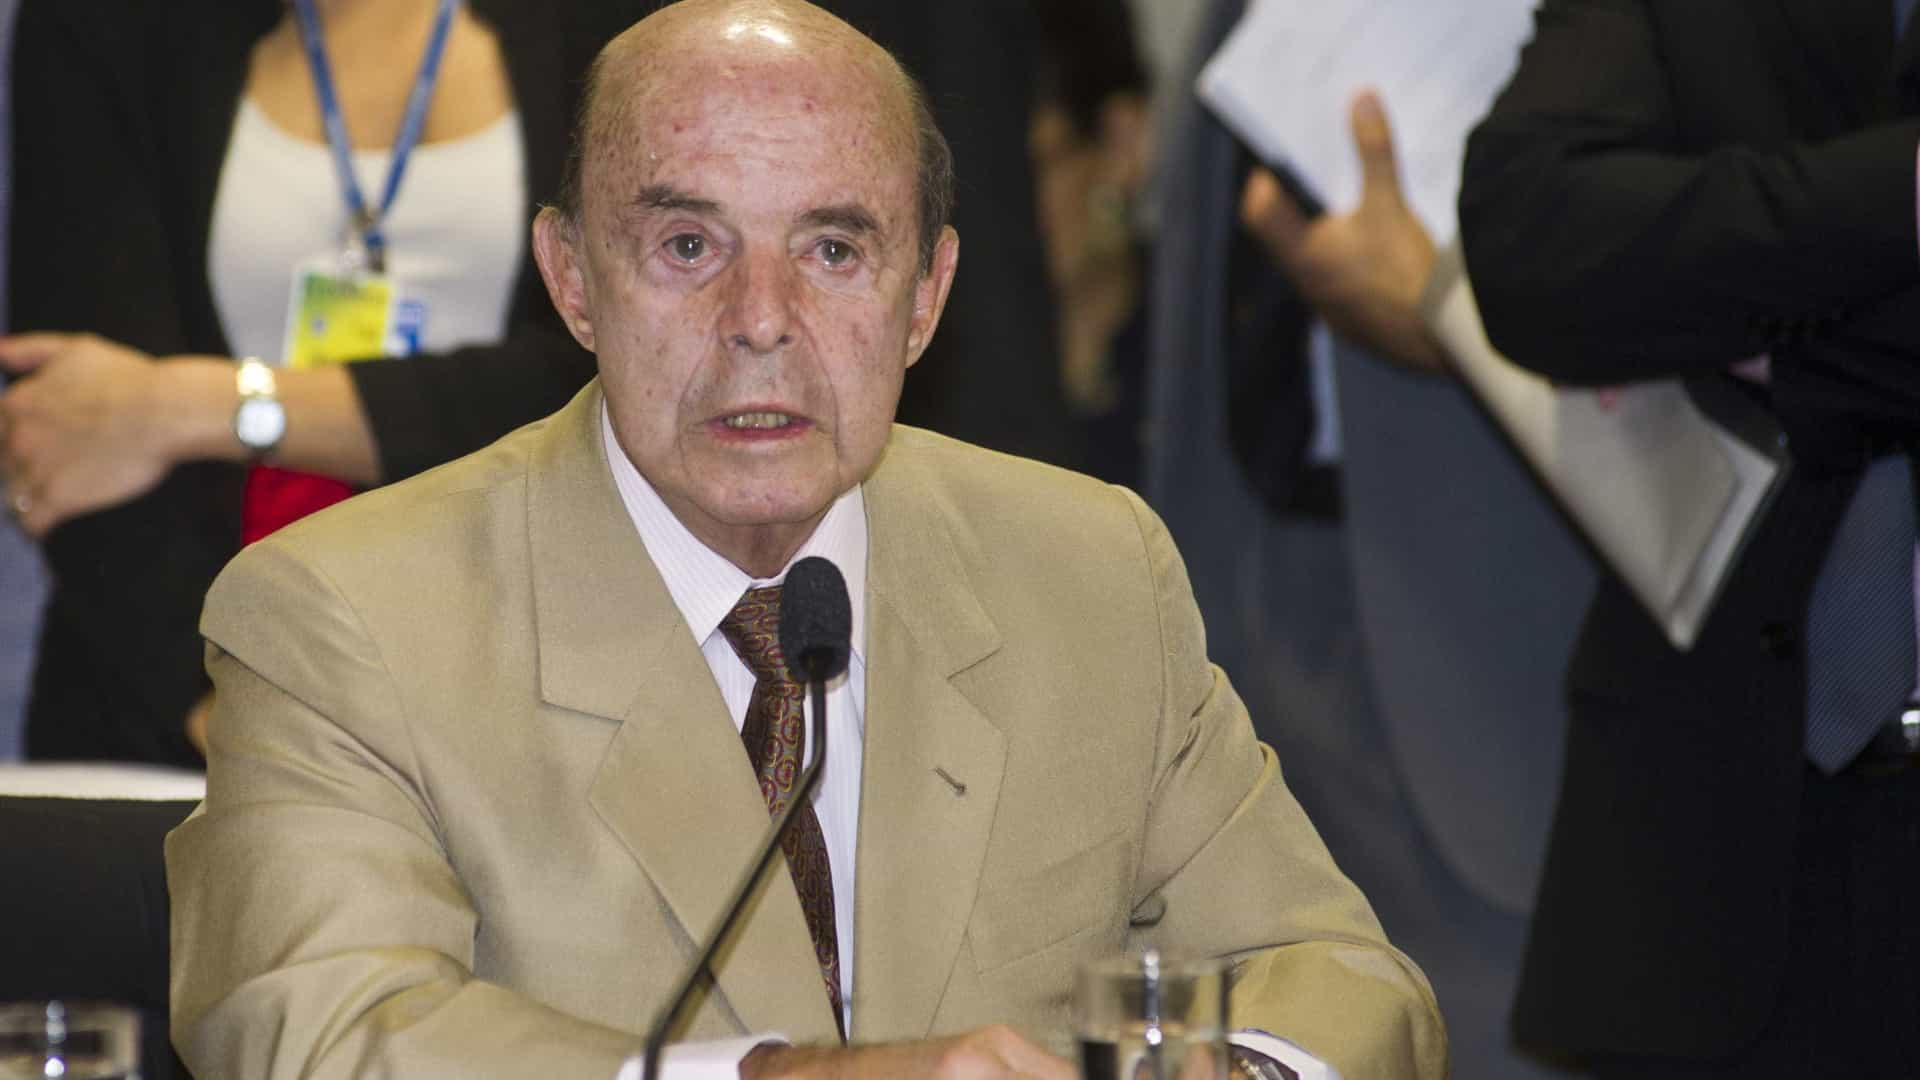 Vice-governador do Rio, Francisco Dornelles está internado